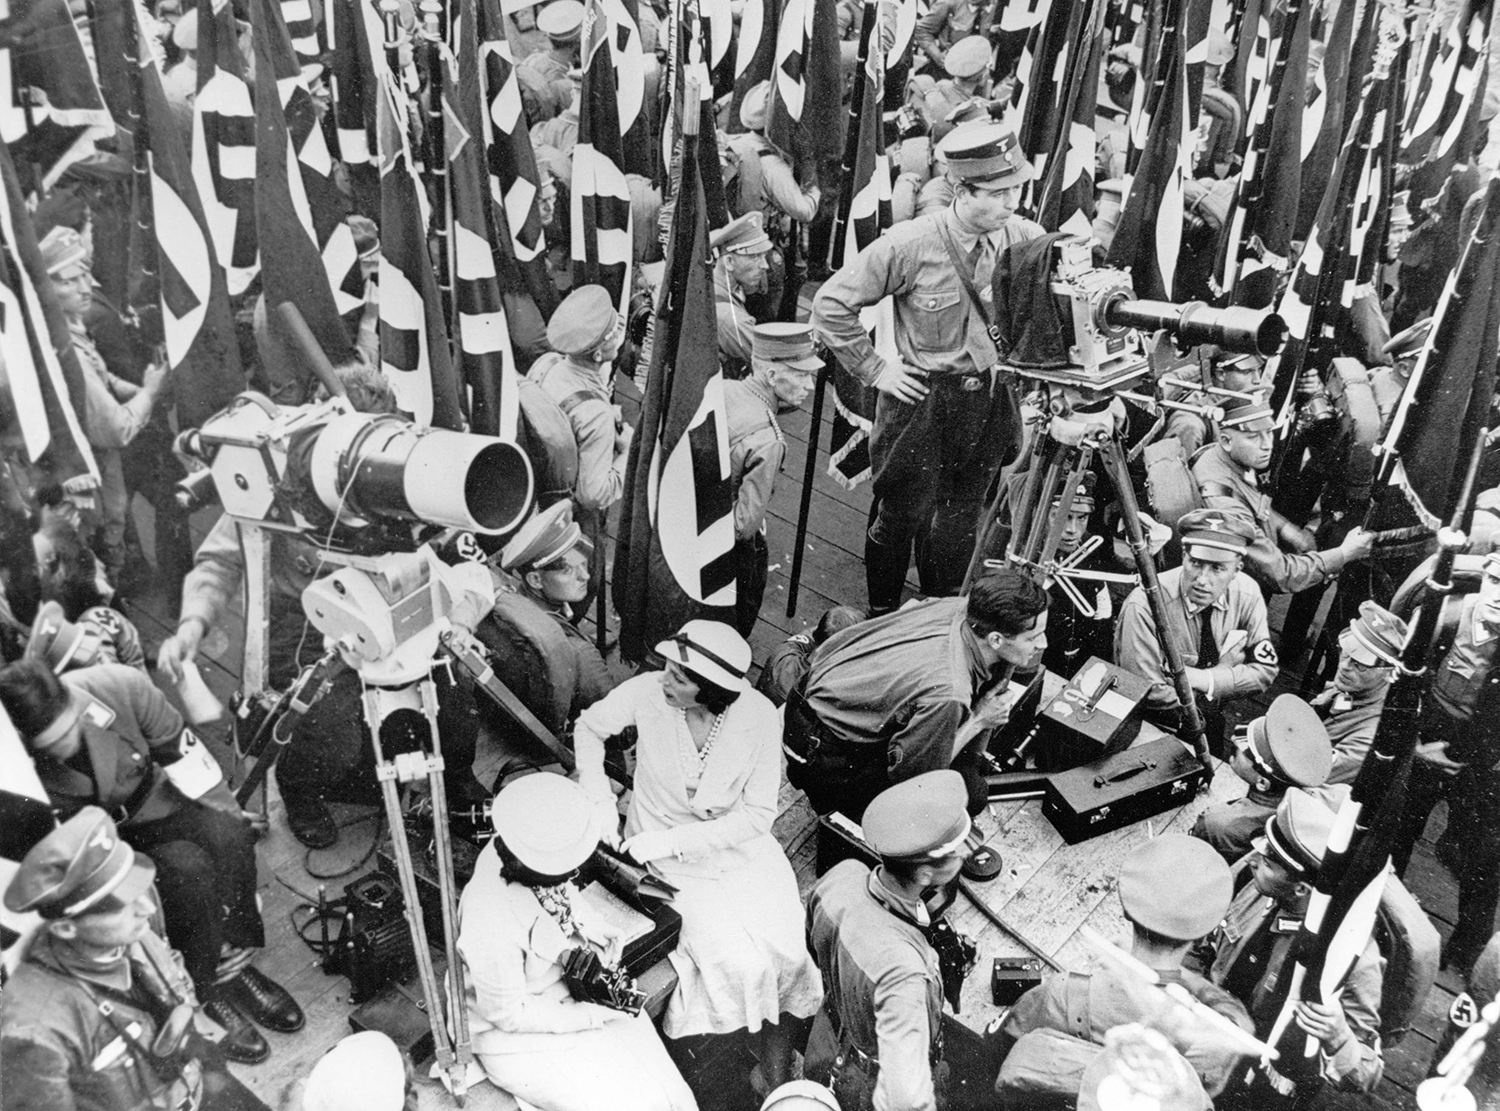 Leni Riefenstahl directing Triumph of the Will, 1934.